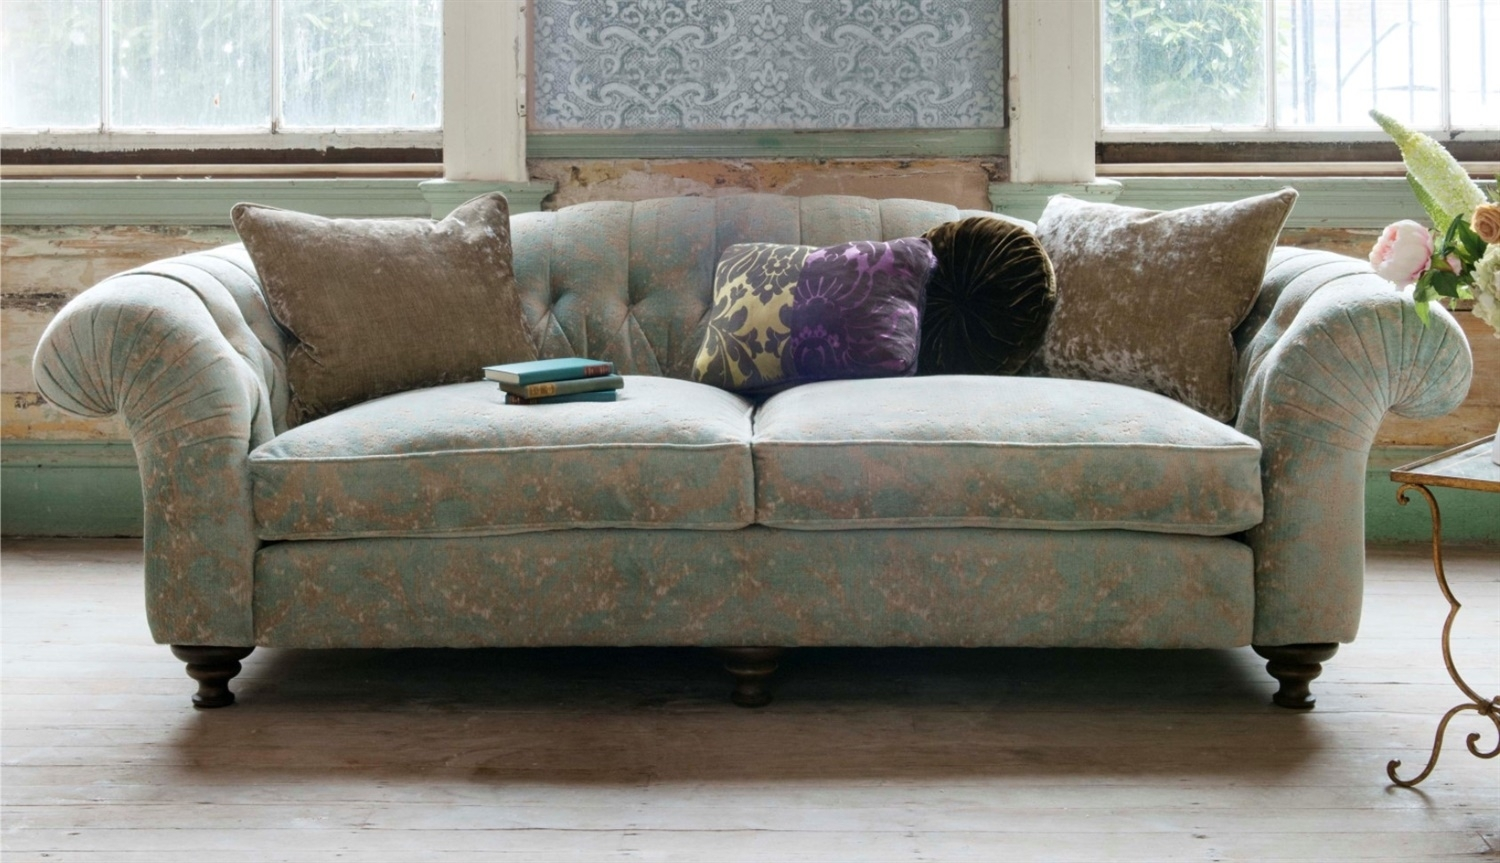 Sofas - Luxury Handcrafted British Fabric Sofas throughout Luxury Sofas (Image 10 of 10)